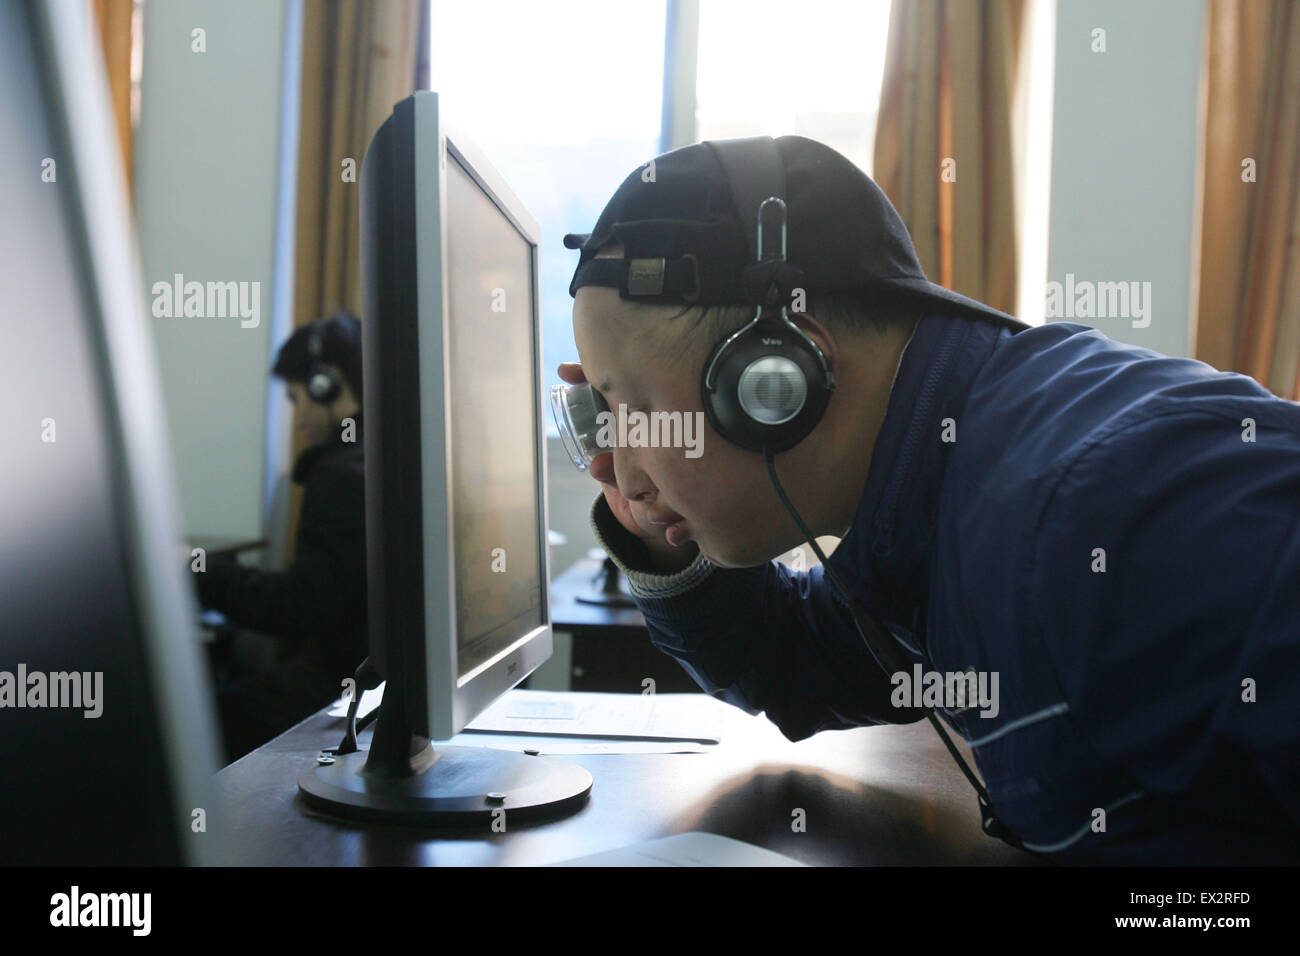 A weak sight man reads questions from computer screen with magnifying glass during a special examination for blind - Stock Image